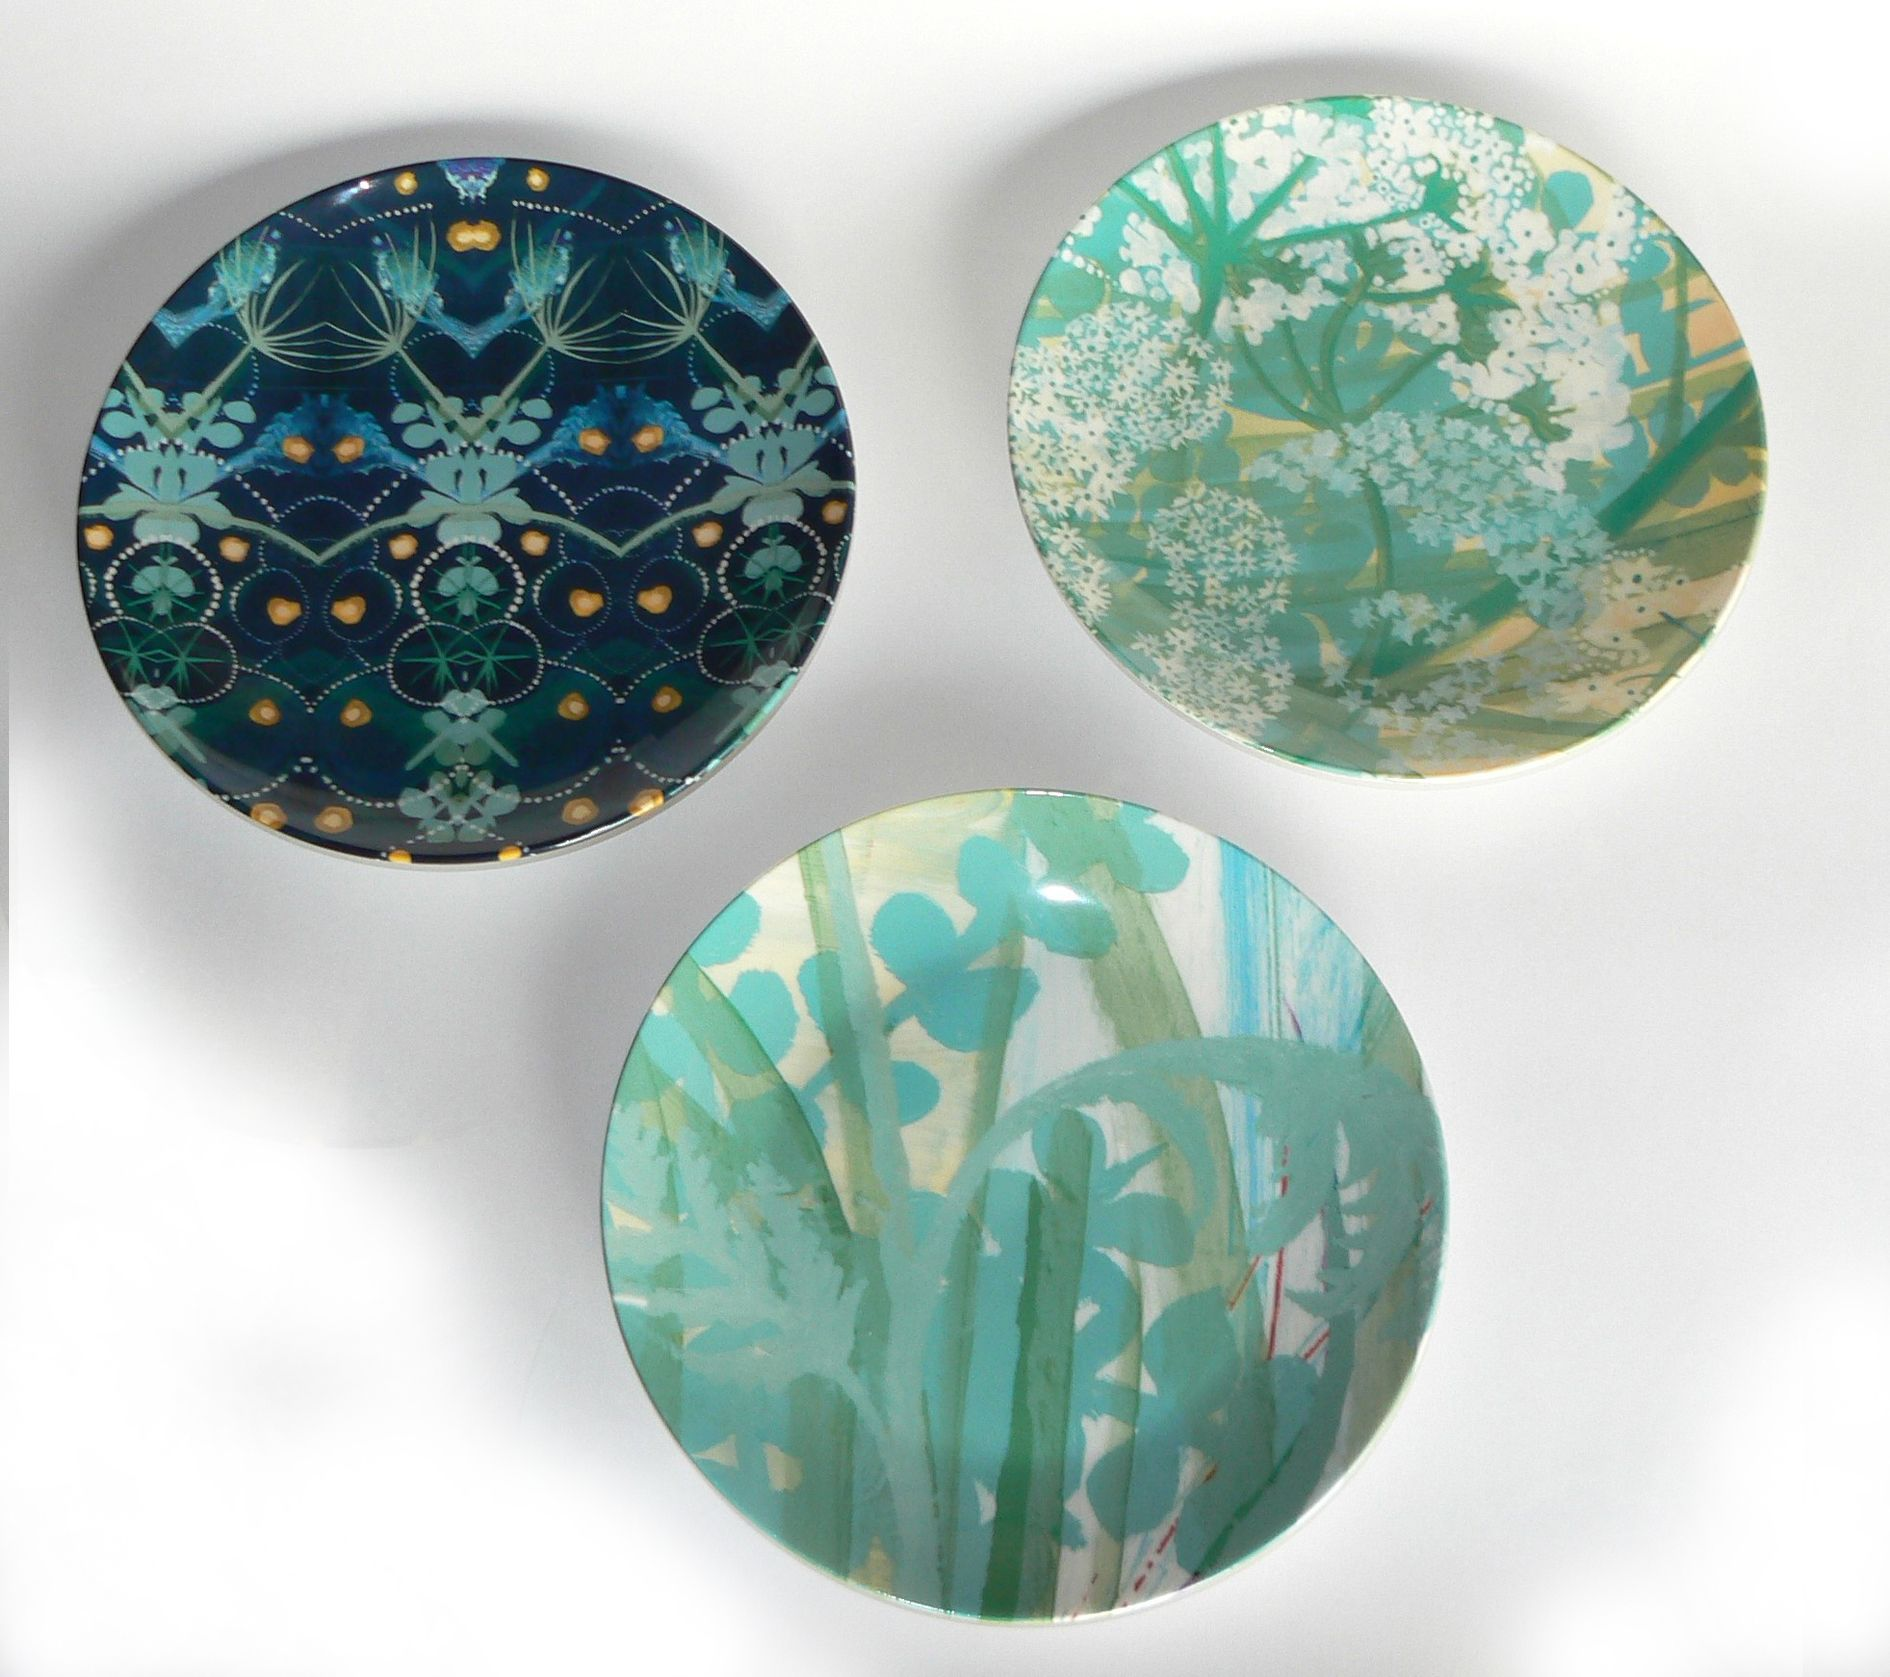 Blooming Bryony plates printed using an Epson SureColor SC-F printer and sublimated by SubliTec